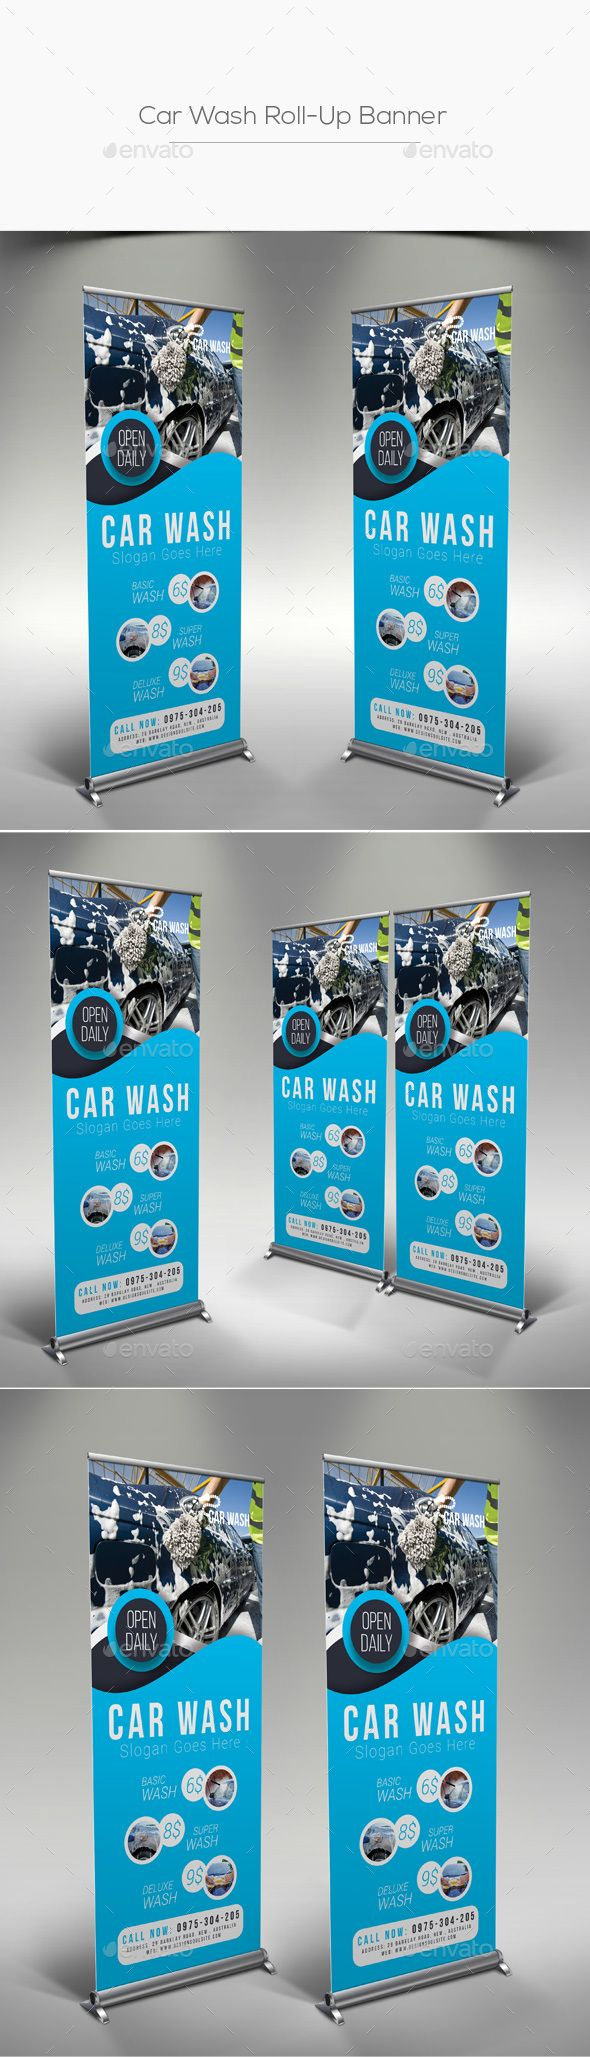 Car wash roll up banner signage print templates download here https